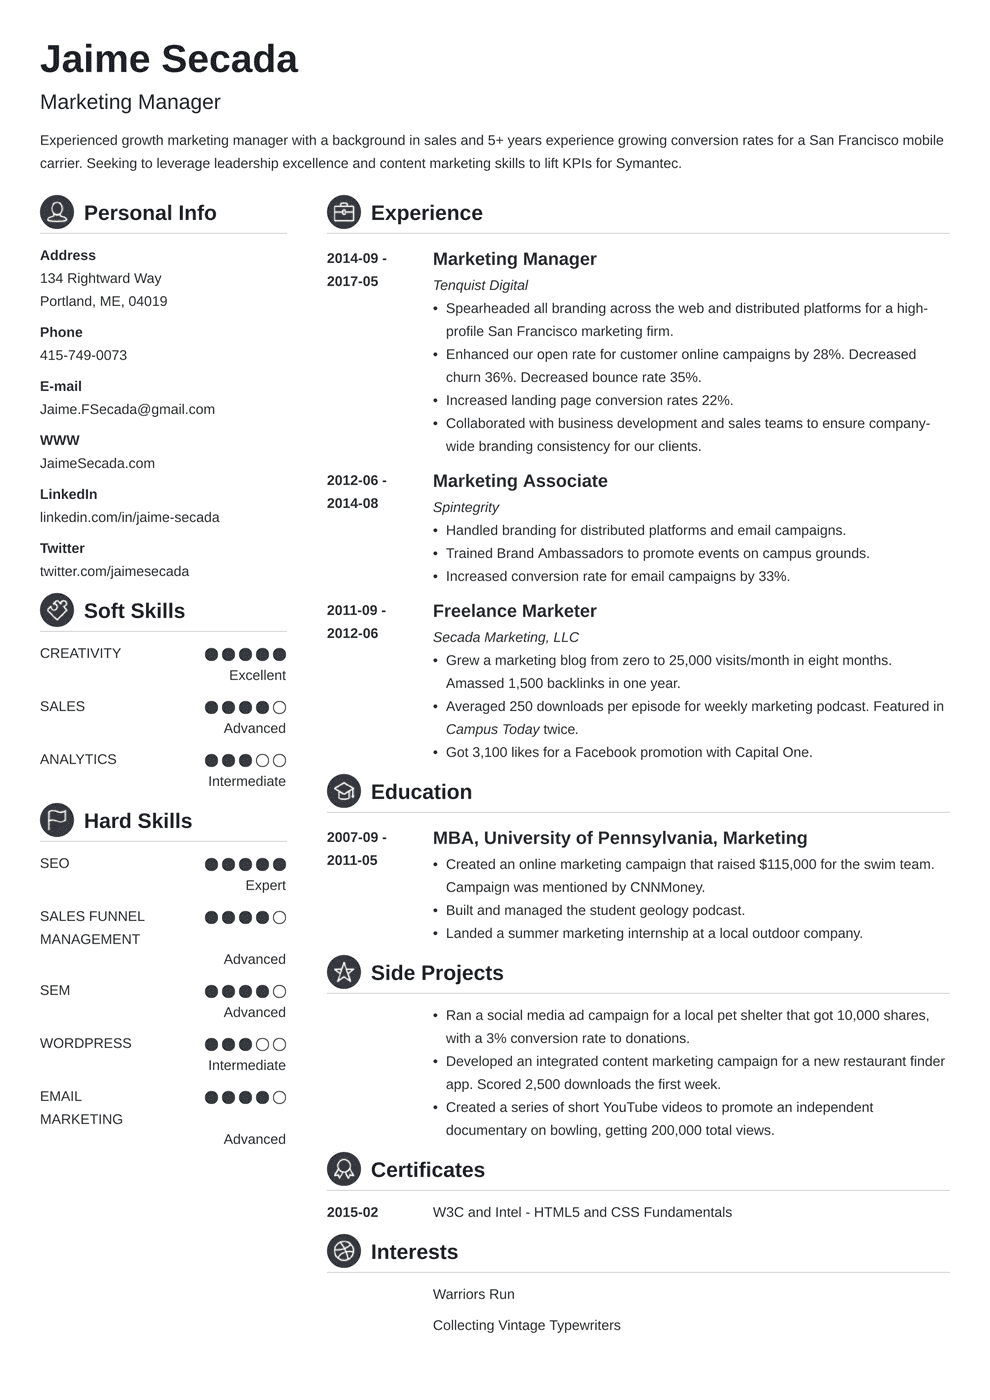 Marketing Manager Resume Examples (Template & Guide)